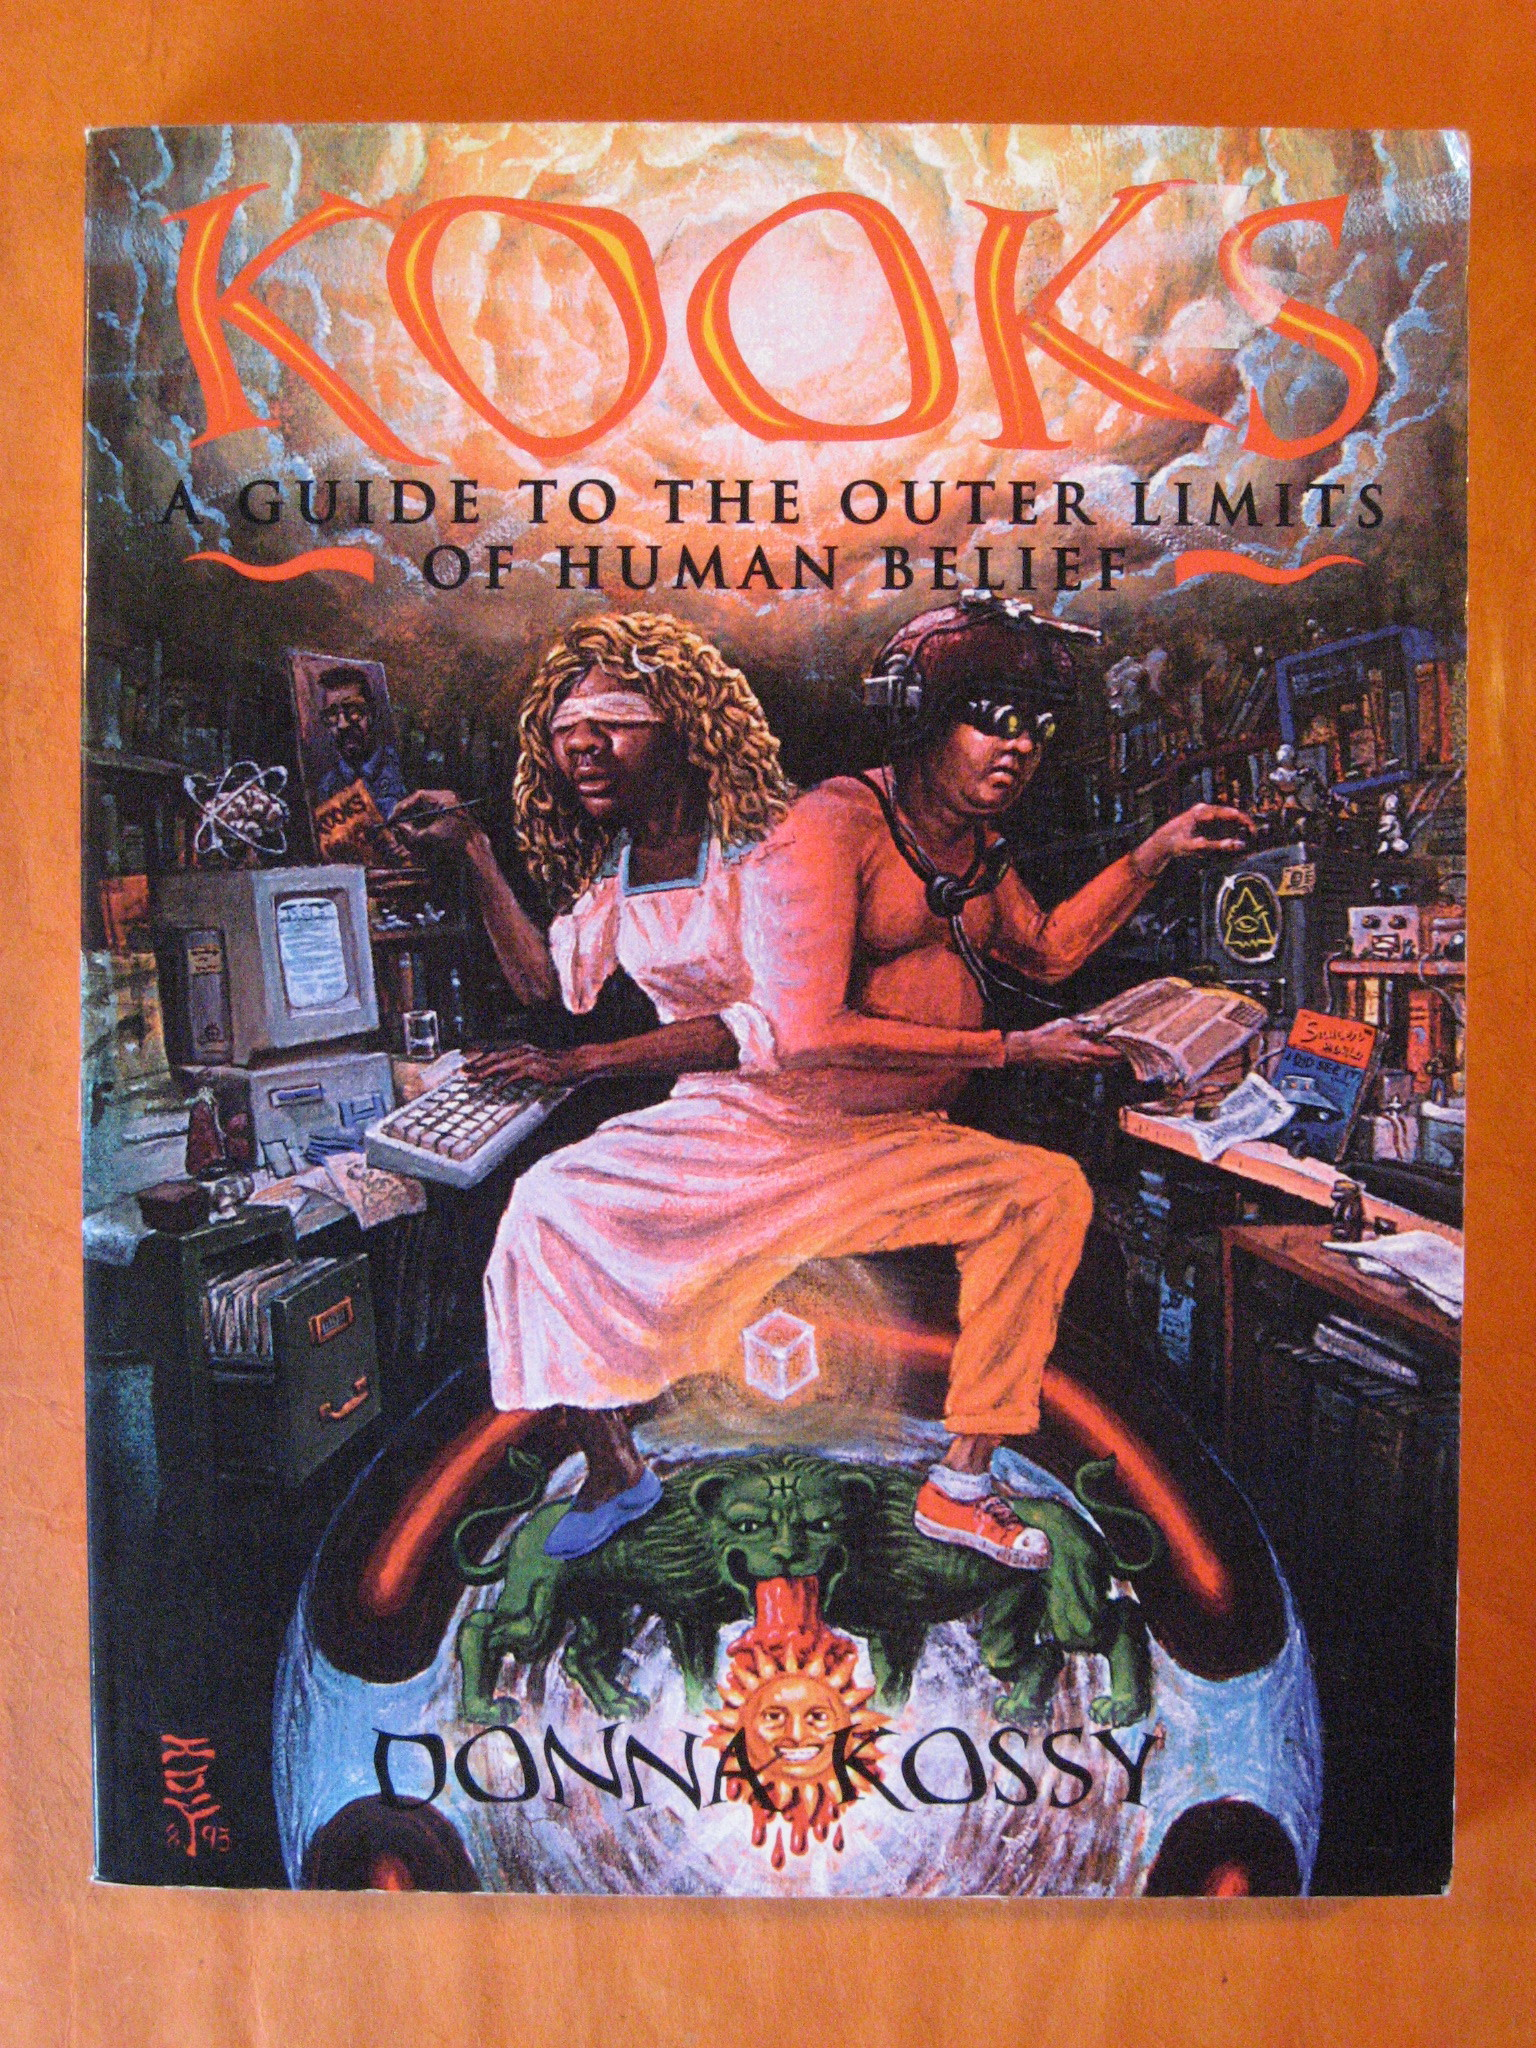 Kooks, A Guide to the Outer Limits of Human Belief, Kossy, Donna